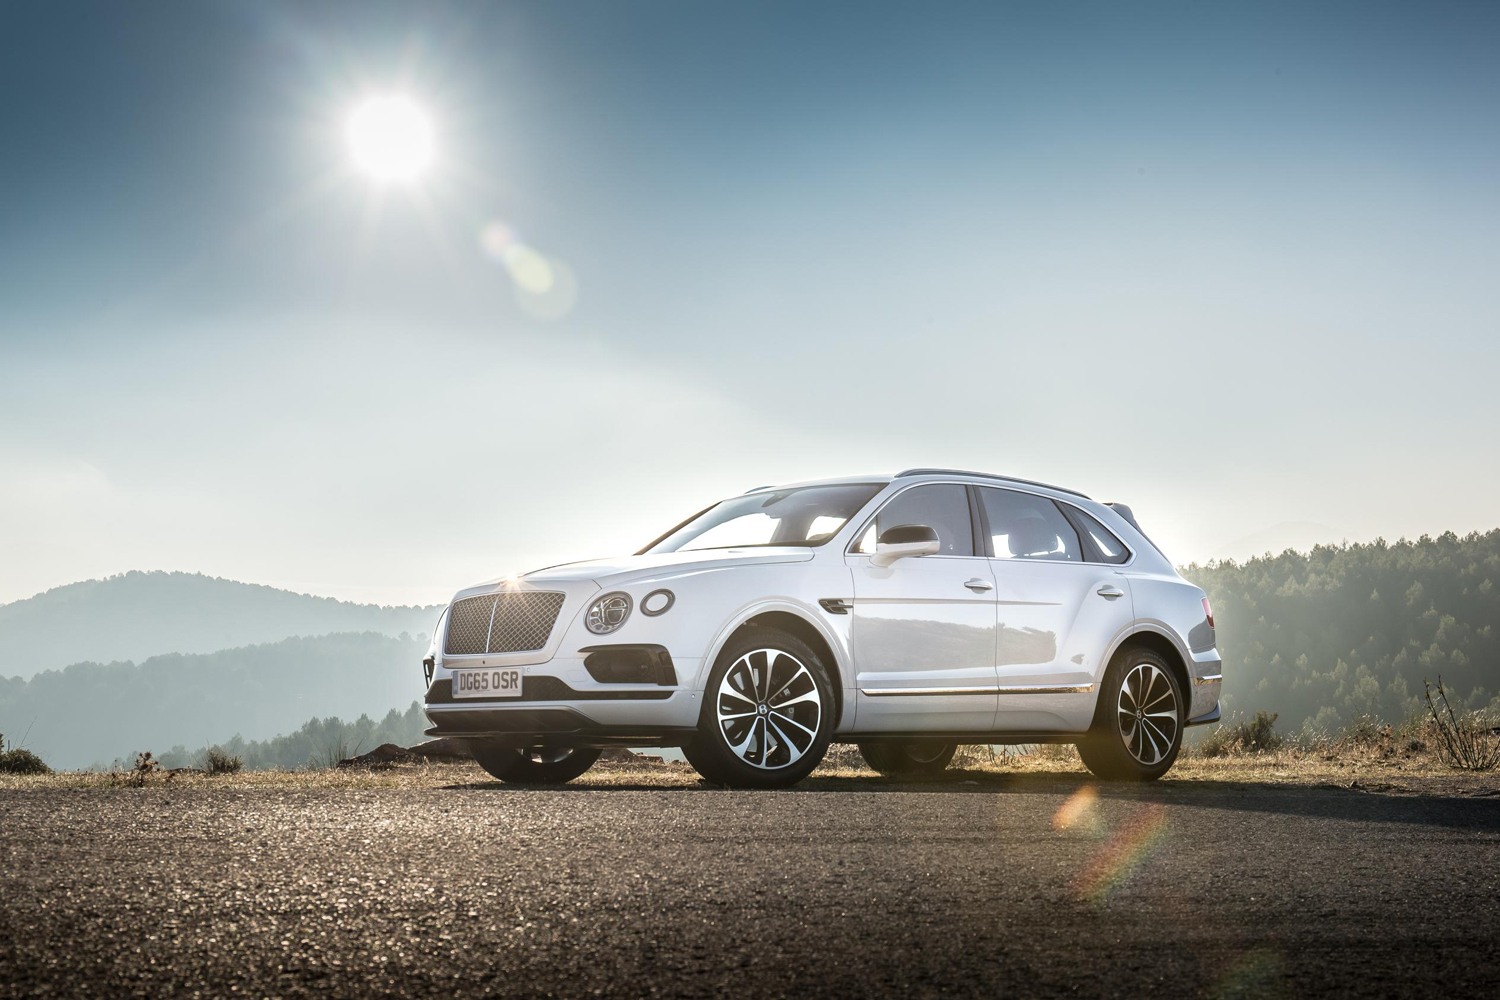 Fastest Car In The World Wallpaper Hd Bentley Bentayga Fastest Most Luxurious Suv For A While